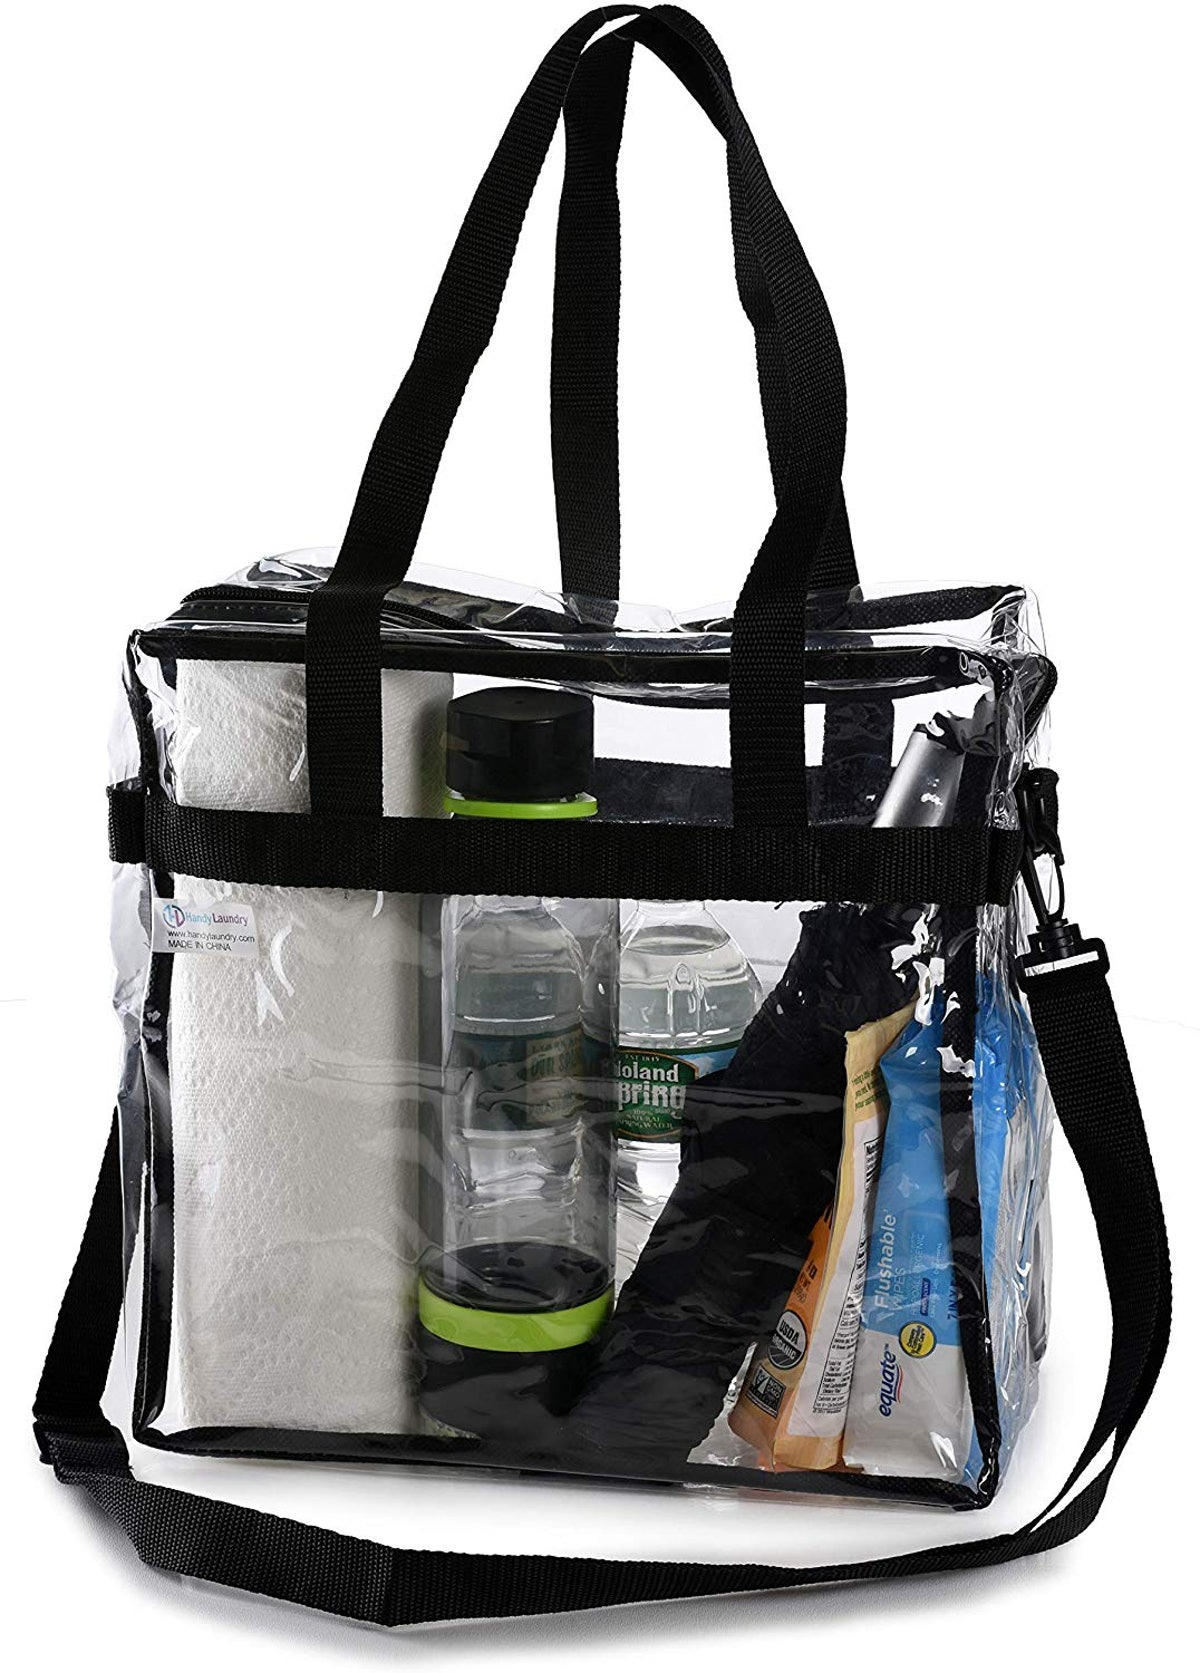 Handy Laundry Clear Tote Bag